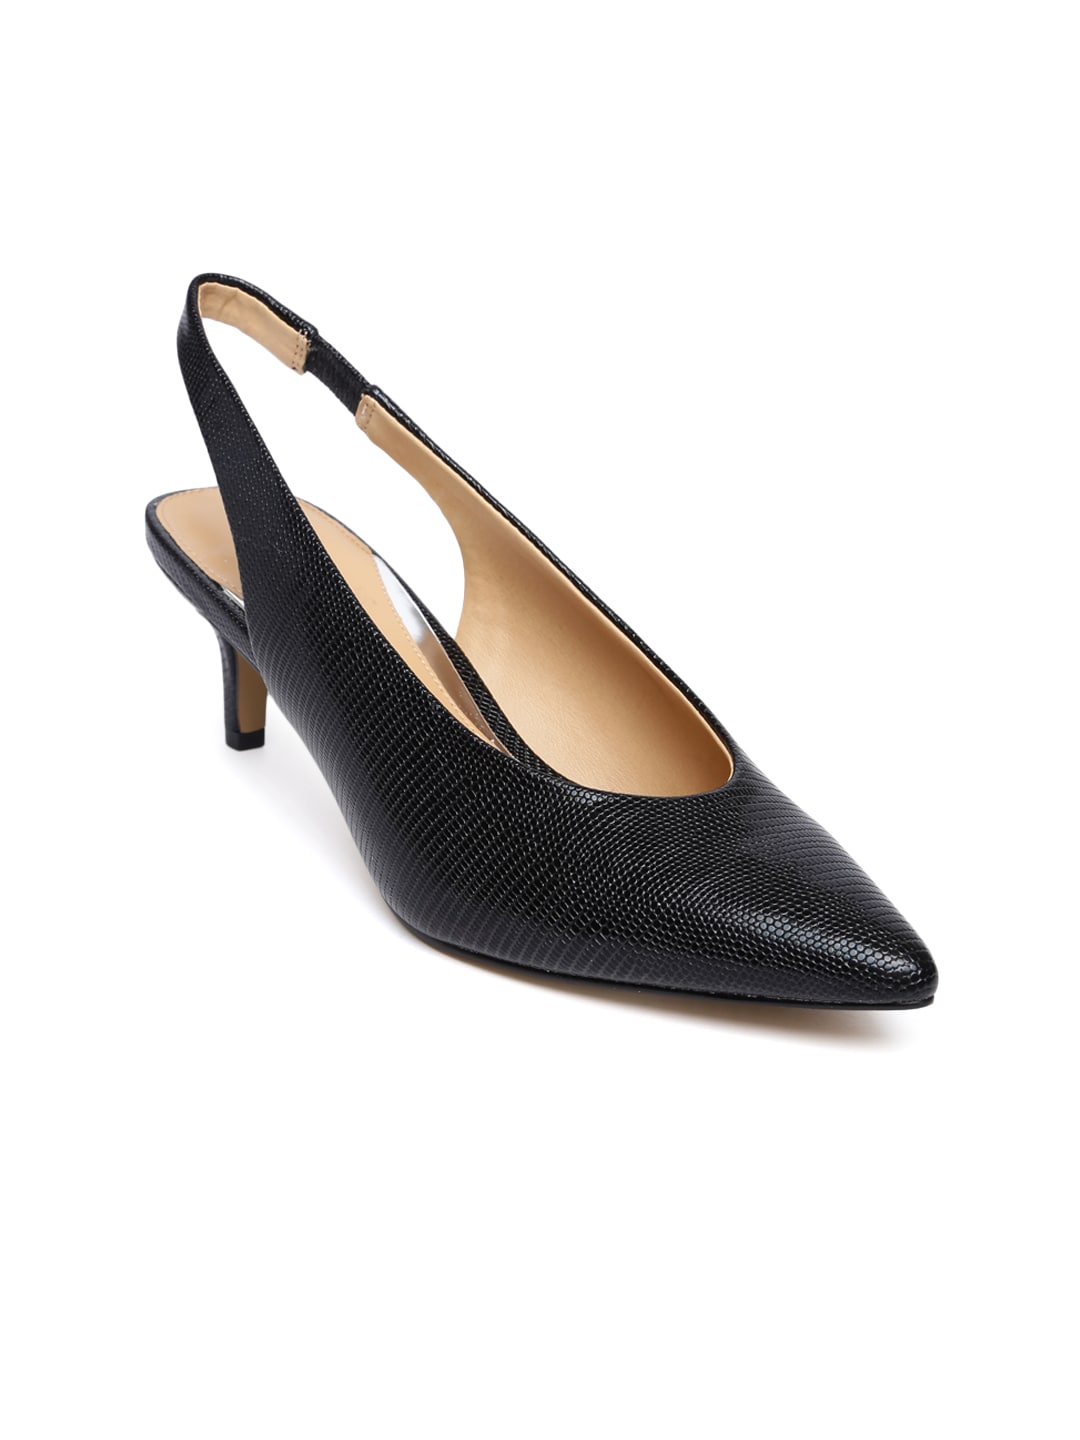 60e6211ed7 Toe Shoes - Buy Toe Shoes online in India